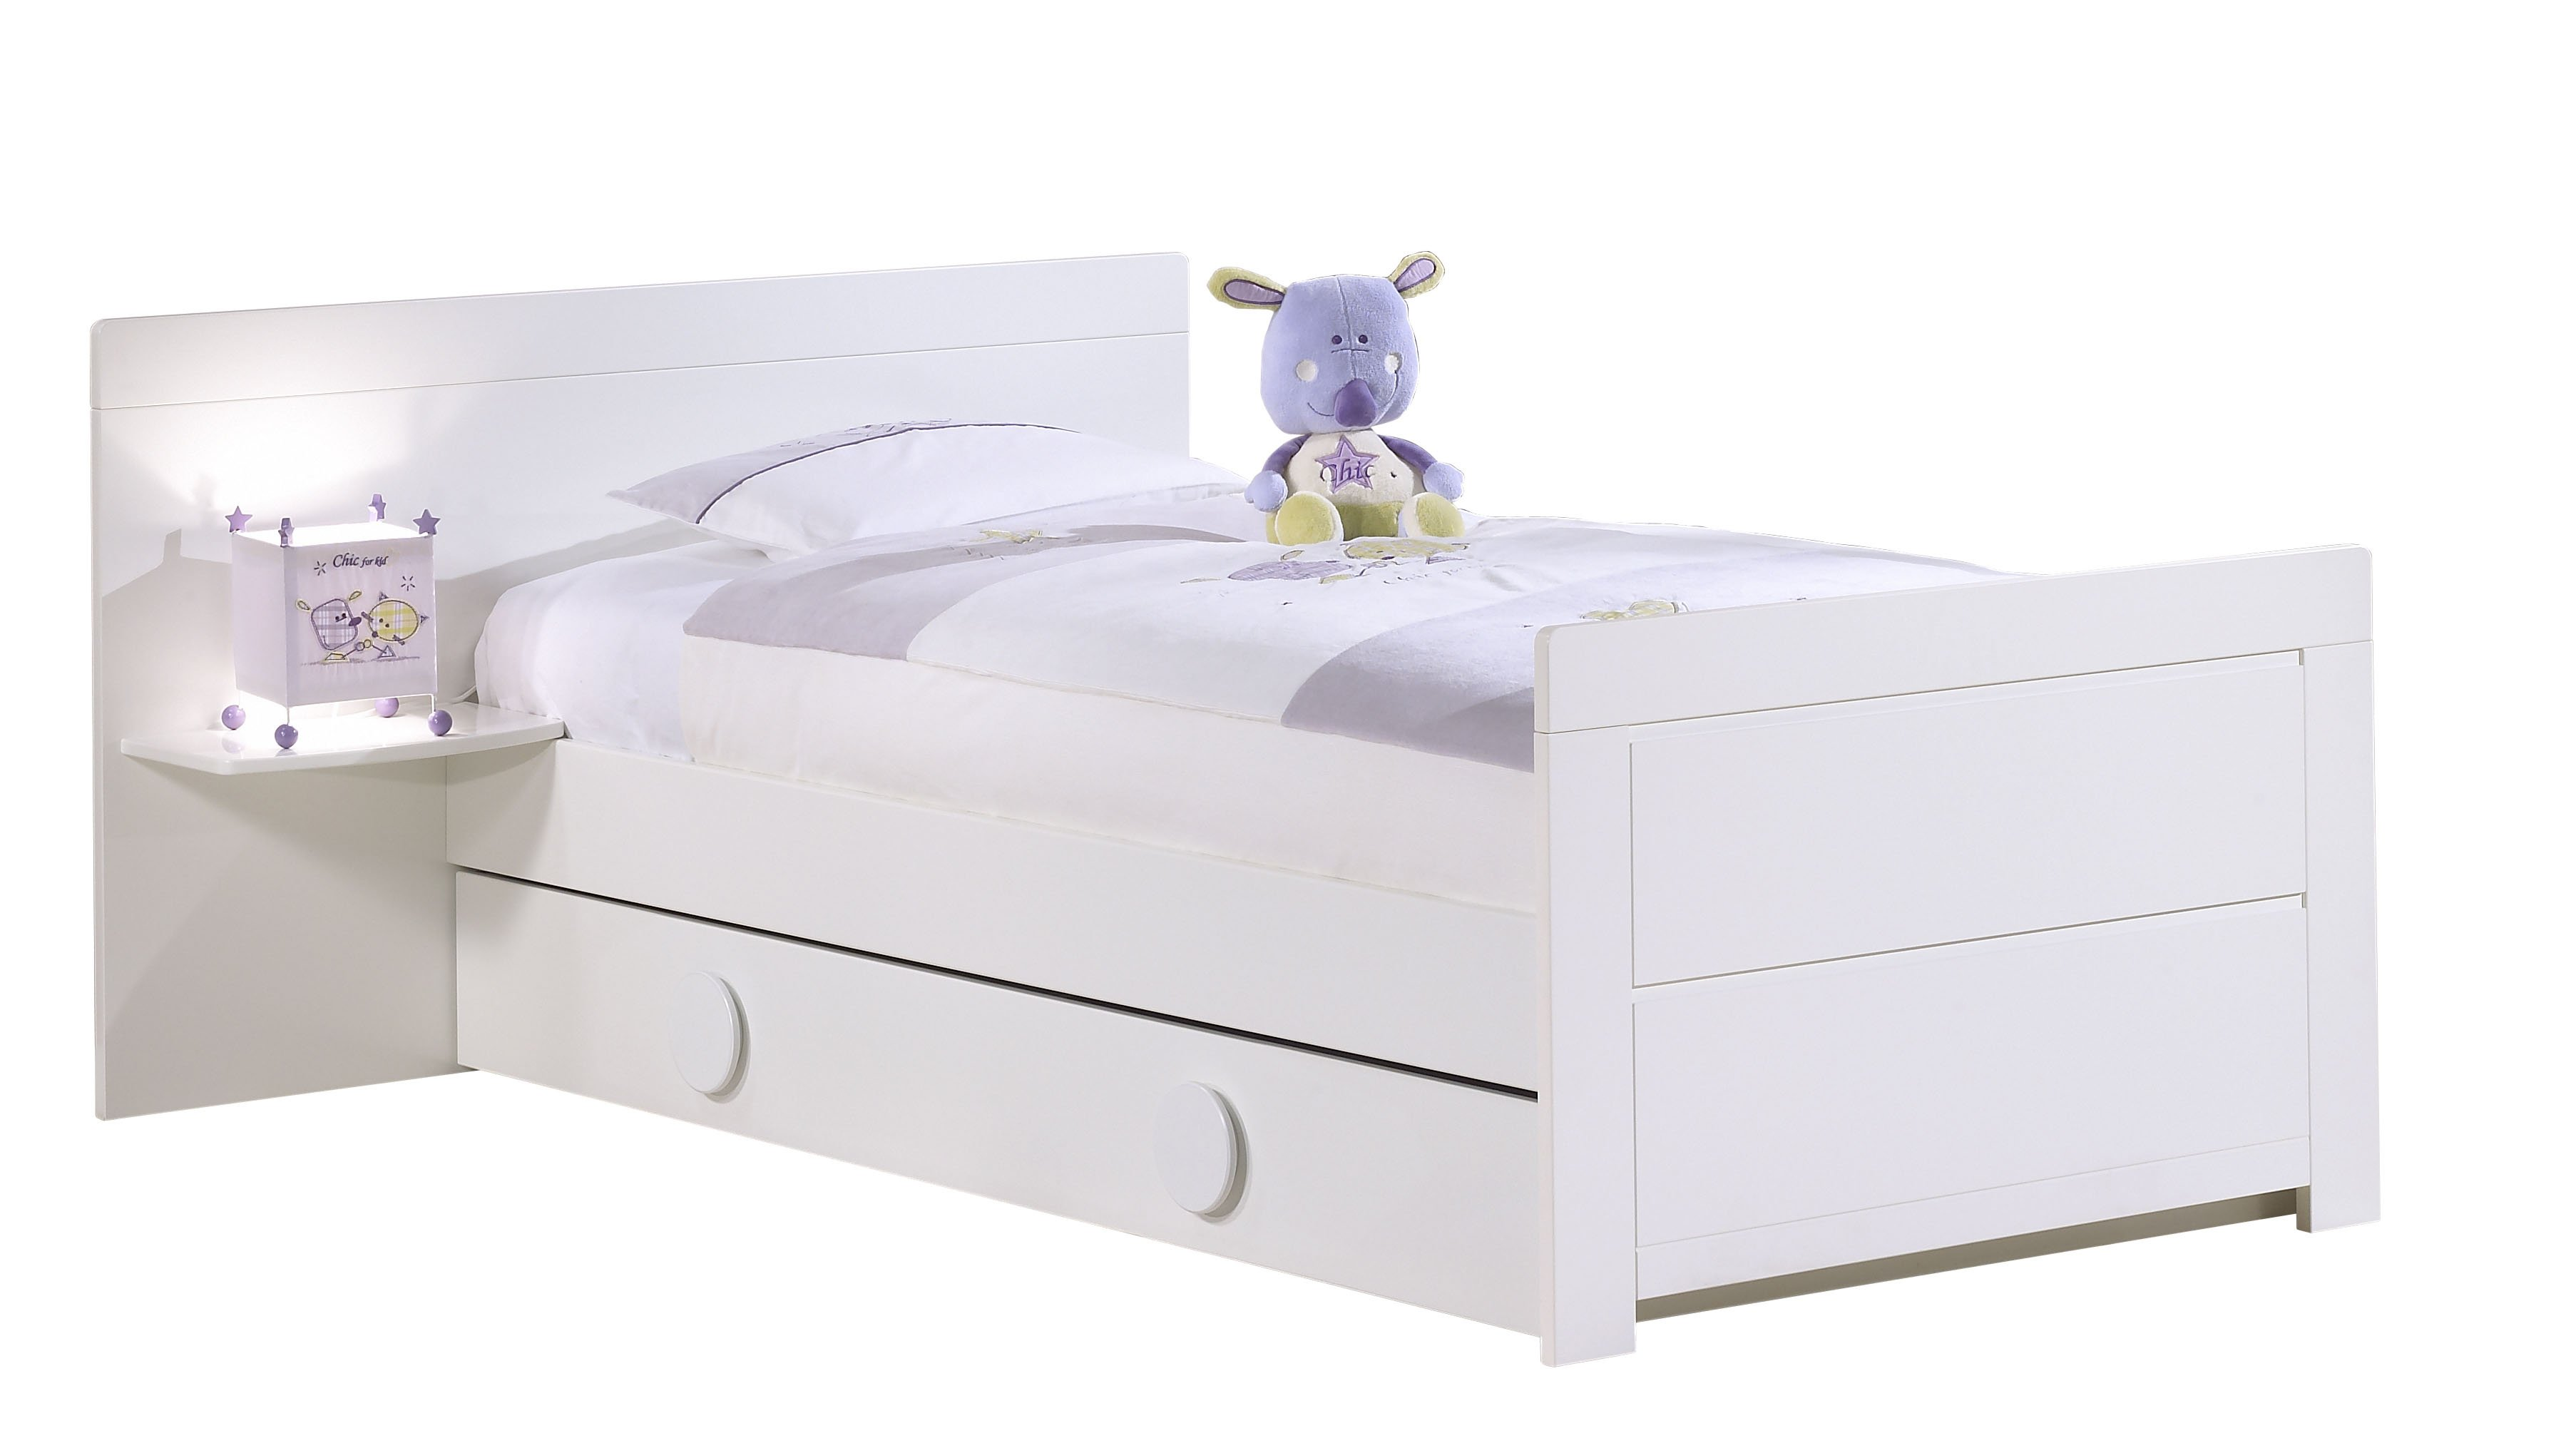 sauthon meubles lit junior 90x190 avec chevet zen blanc made in b b. Black Bedroom Furniture Sets. Home Design Ideas